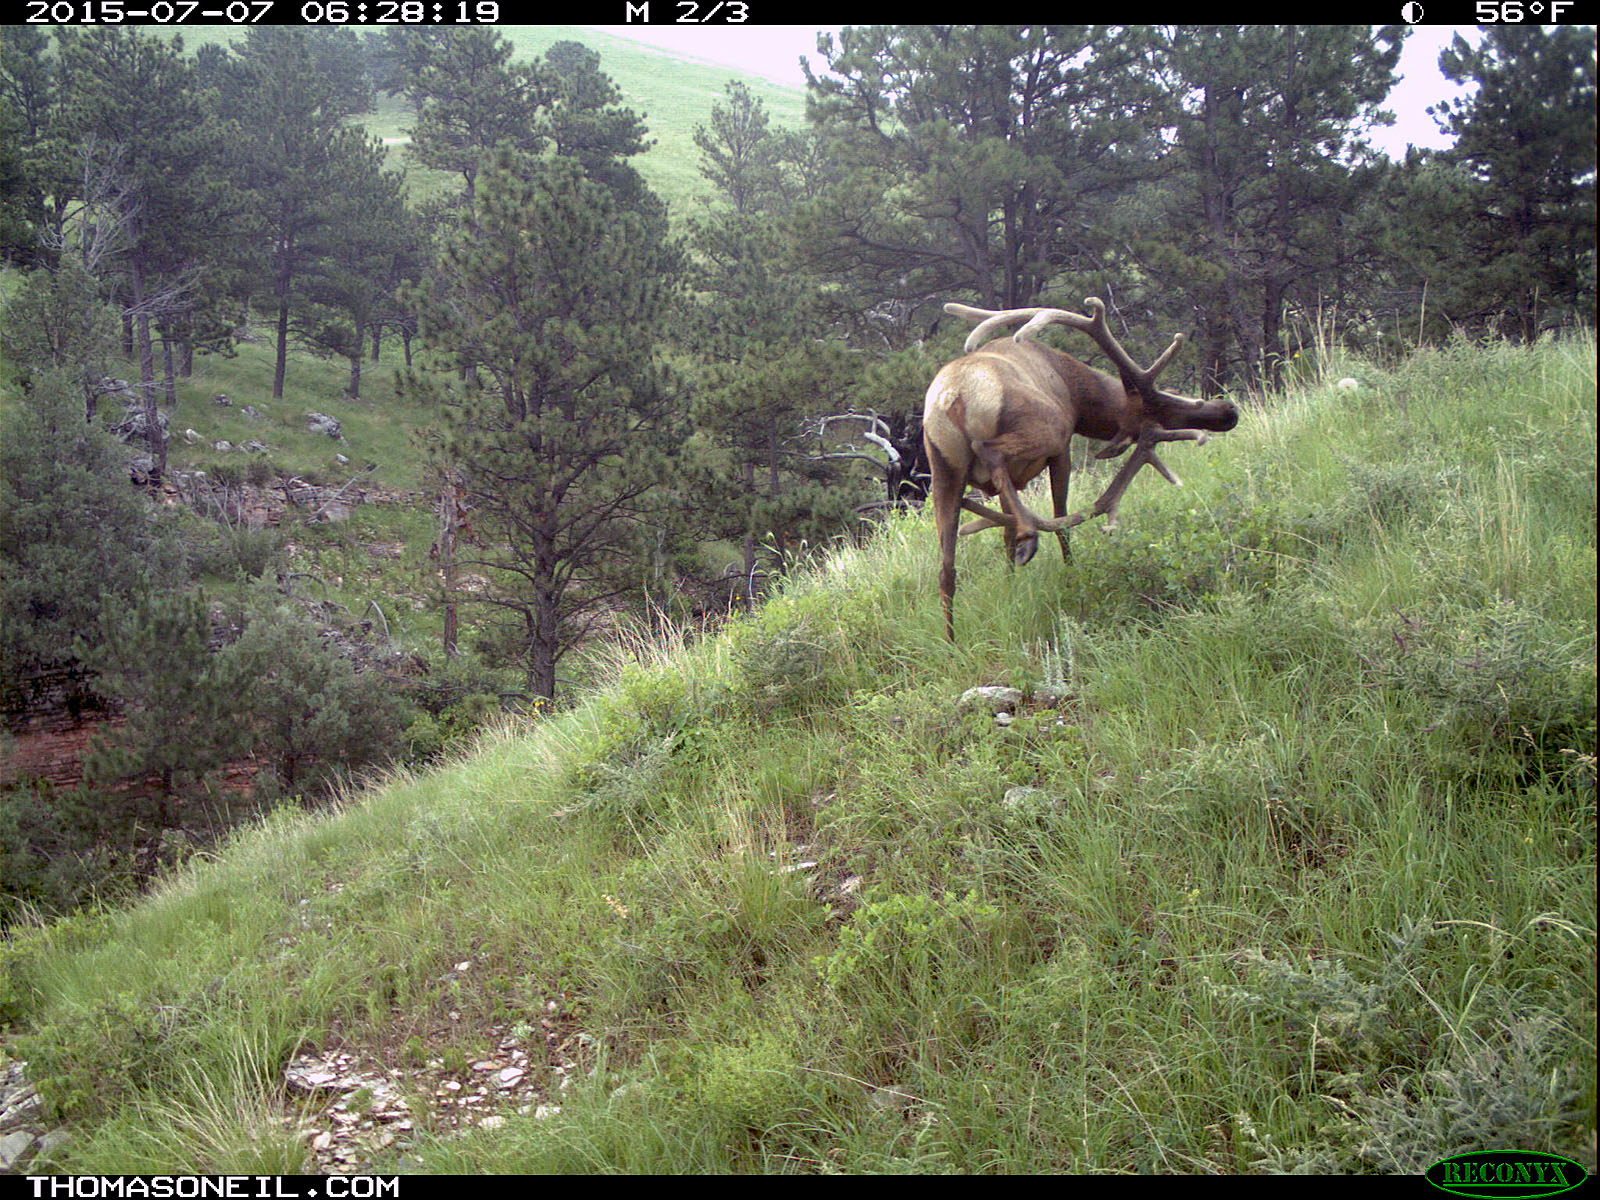 Elk scratching sequence on trailcam, 6 of 7, Wind Cave National Park, July 2015,   Click for next photo.